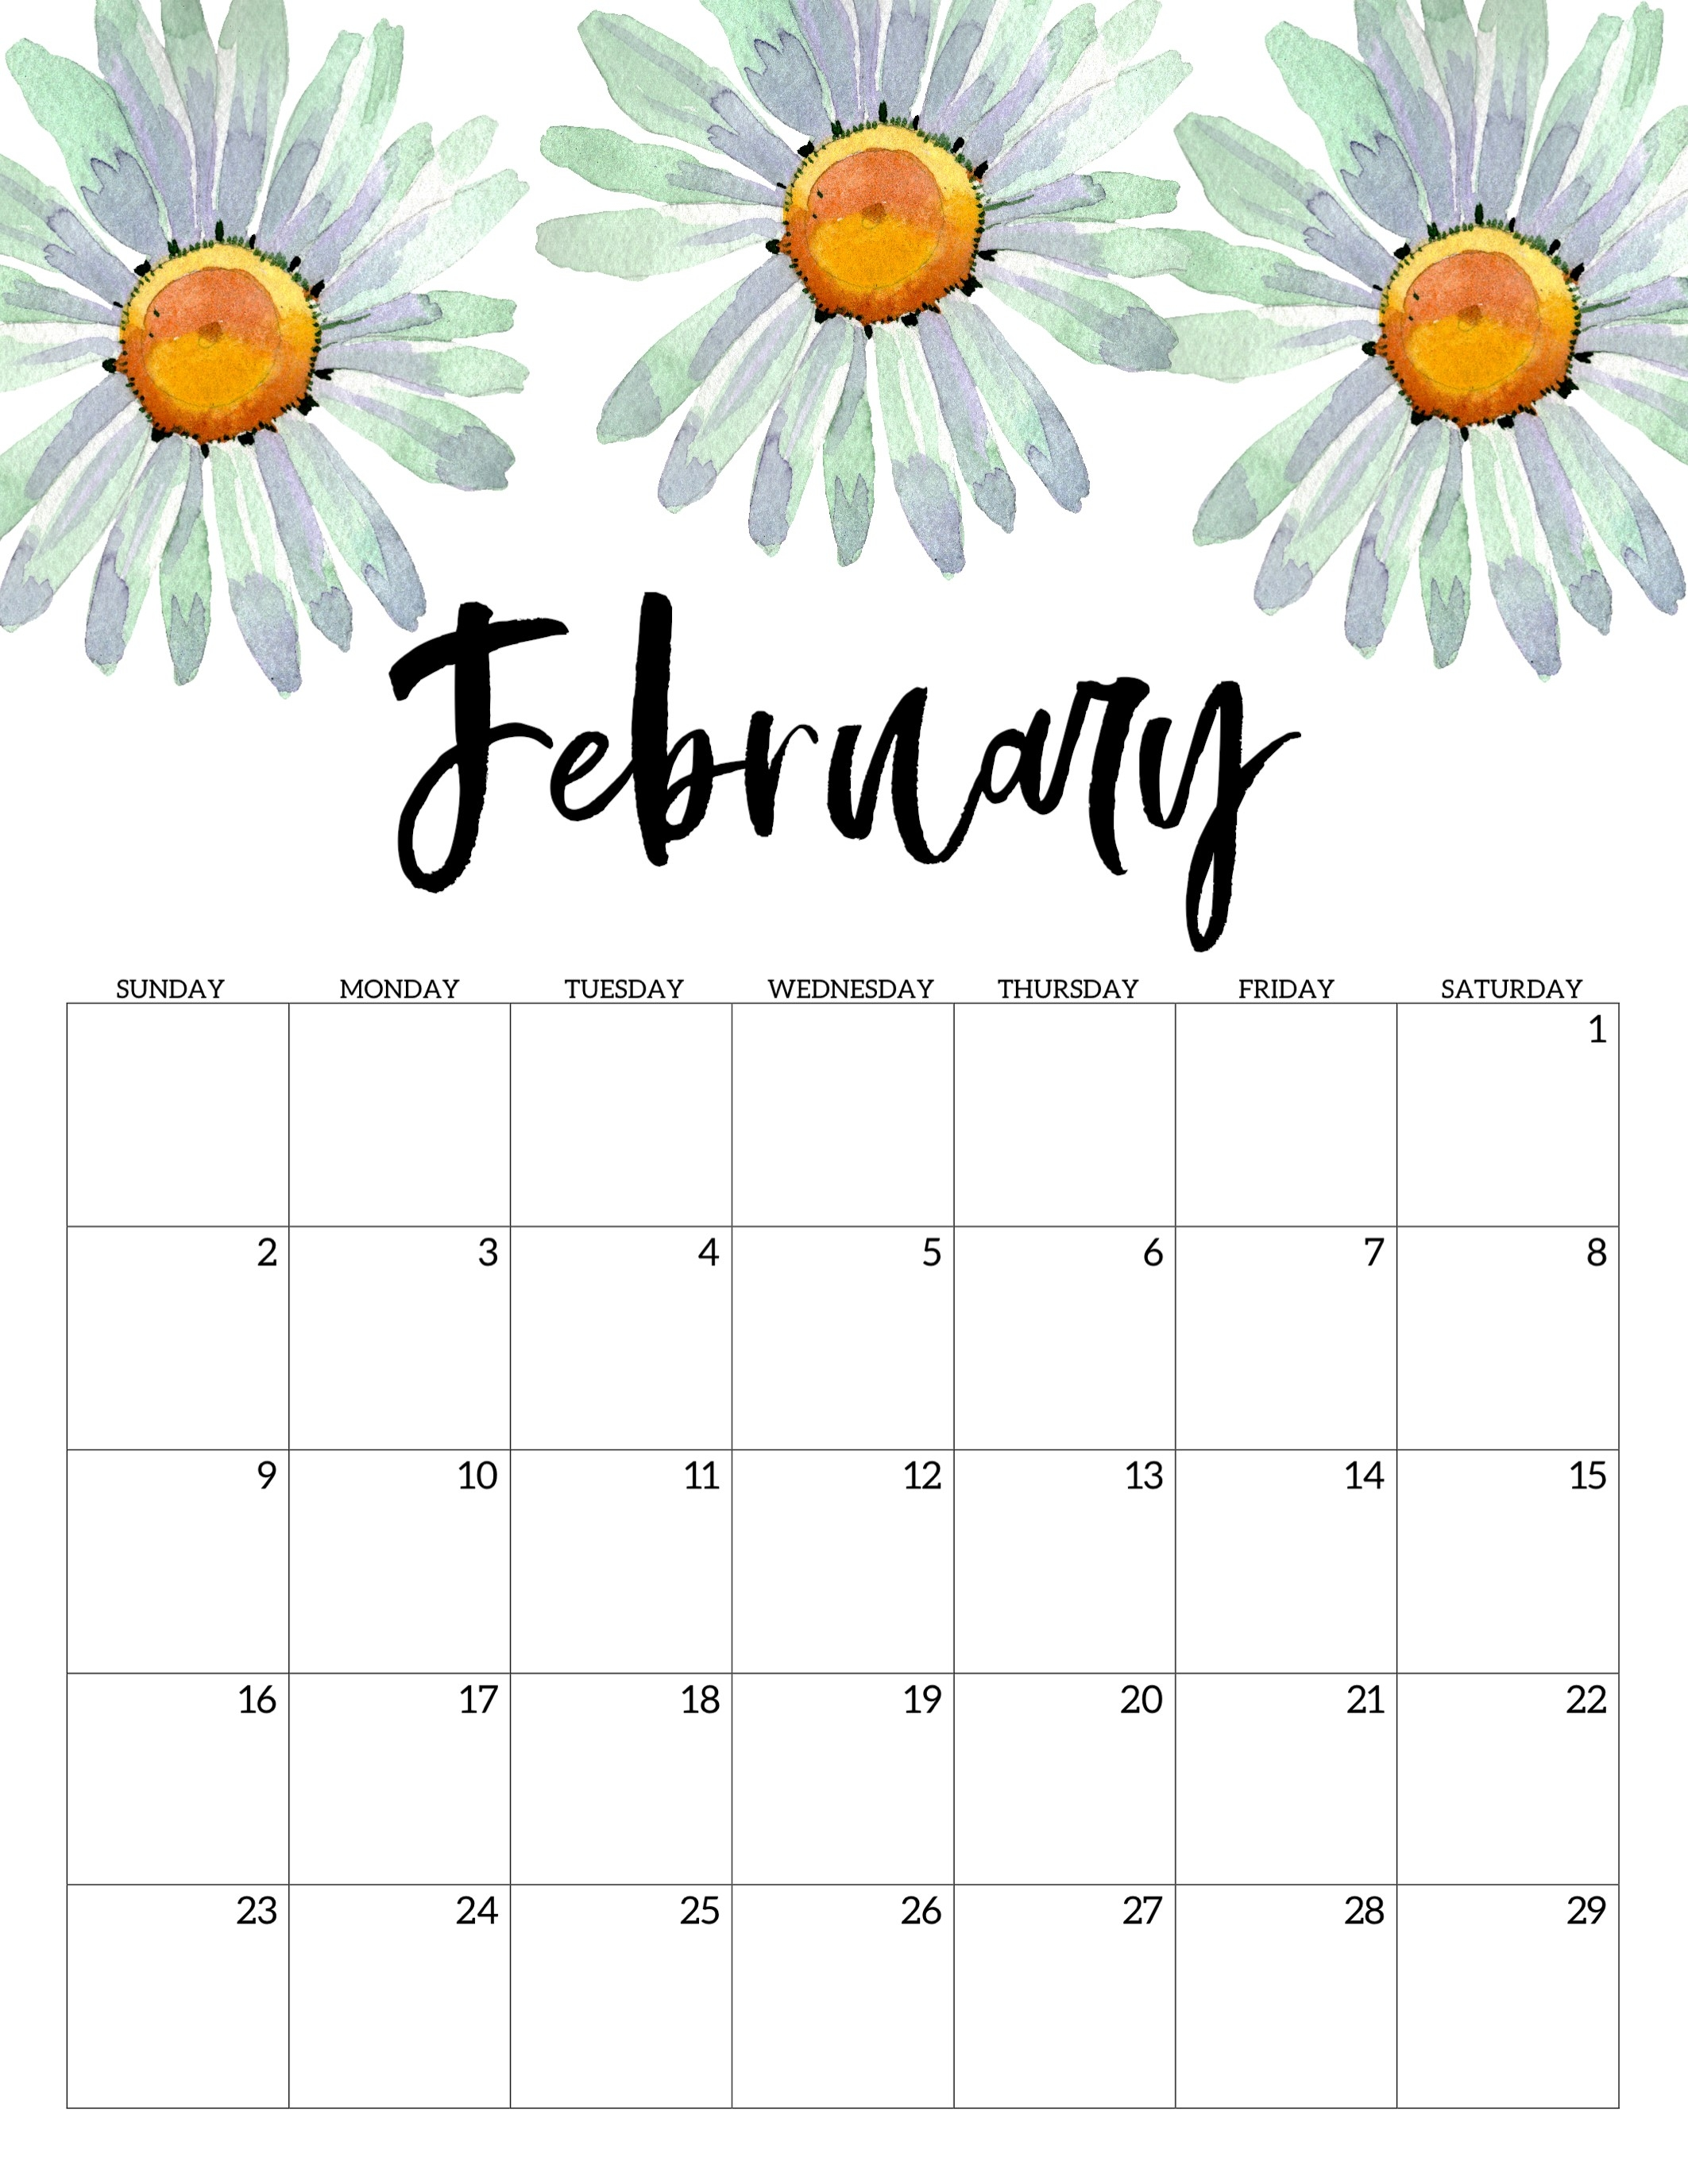 2020 Free Printable Calendar - Floral - Paper Trail Design-January 2020 Calendar Printable Cute